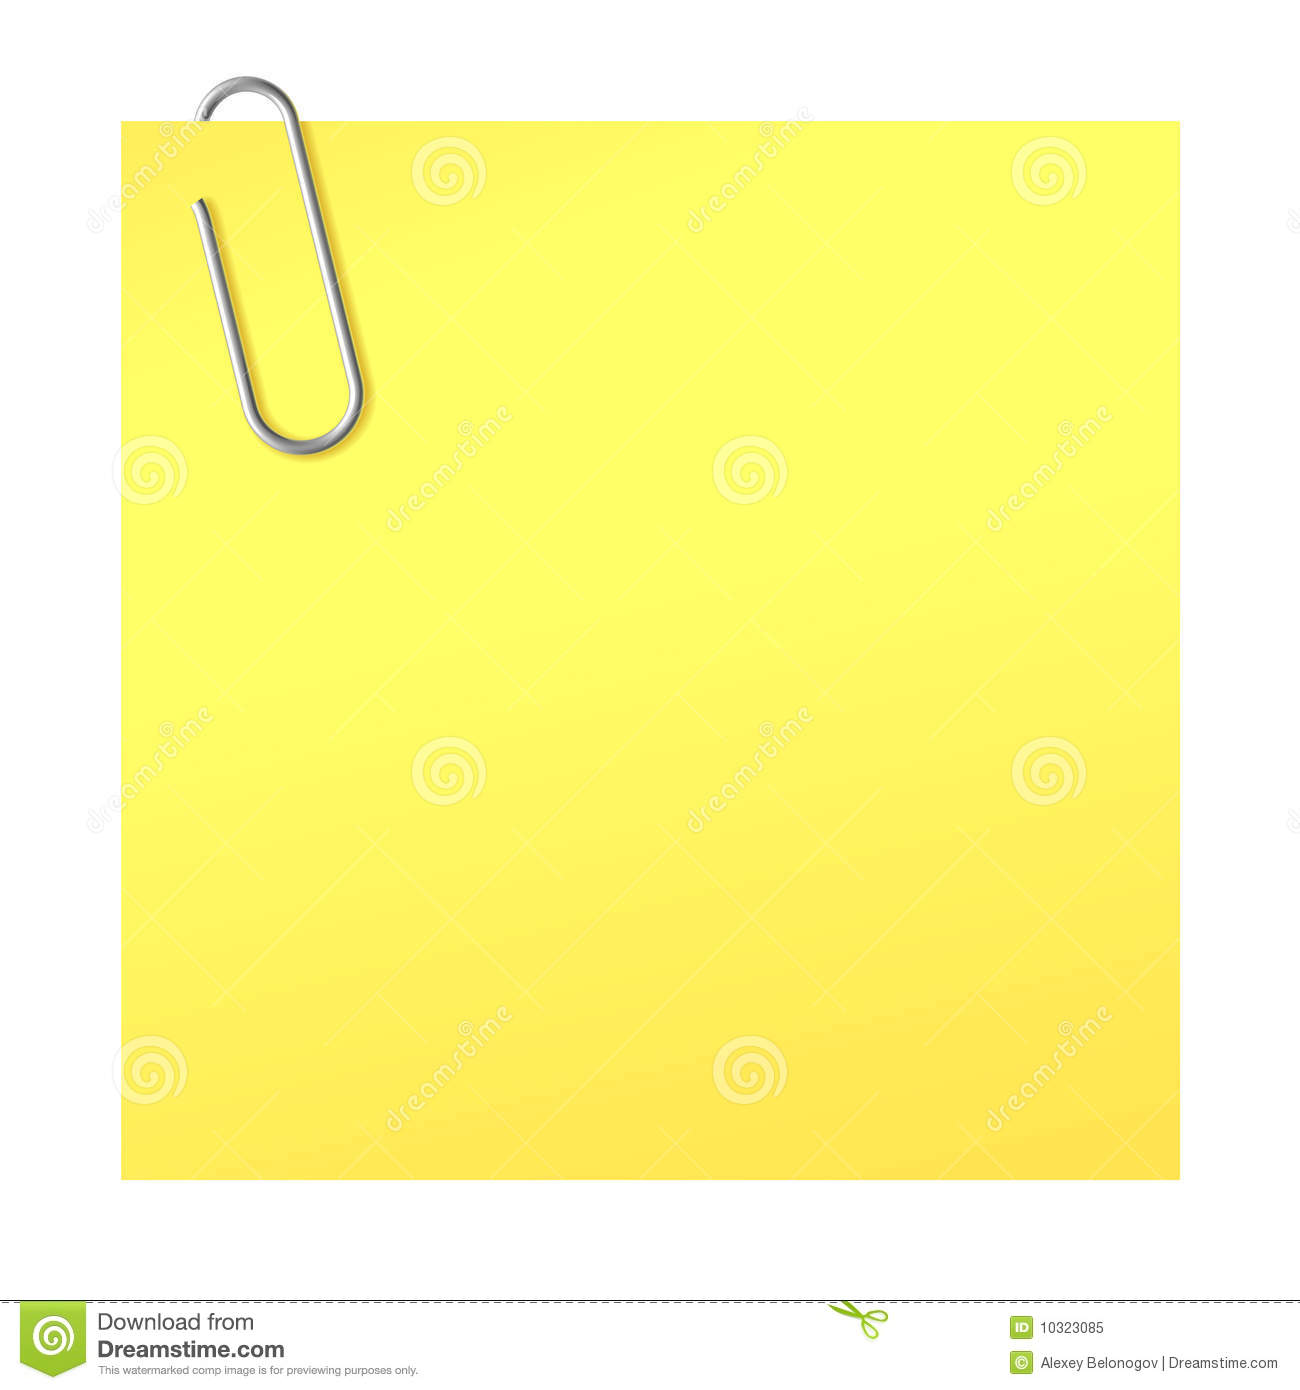 paper clip and yellow sticker stock vector - illustration of